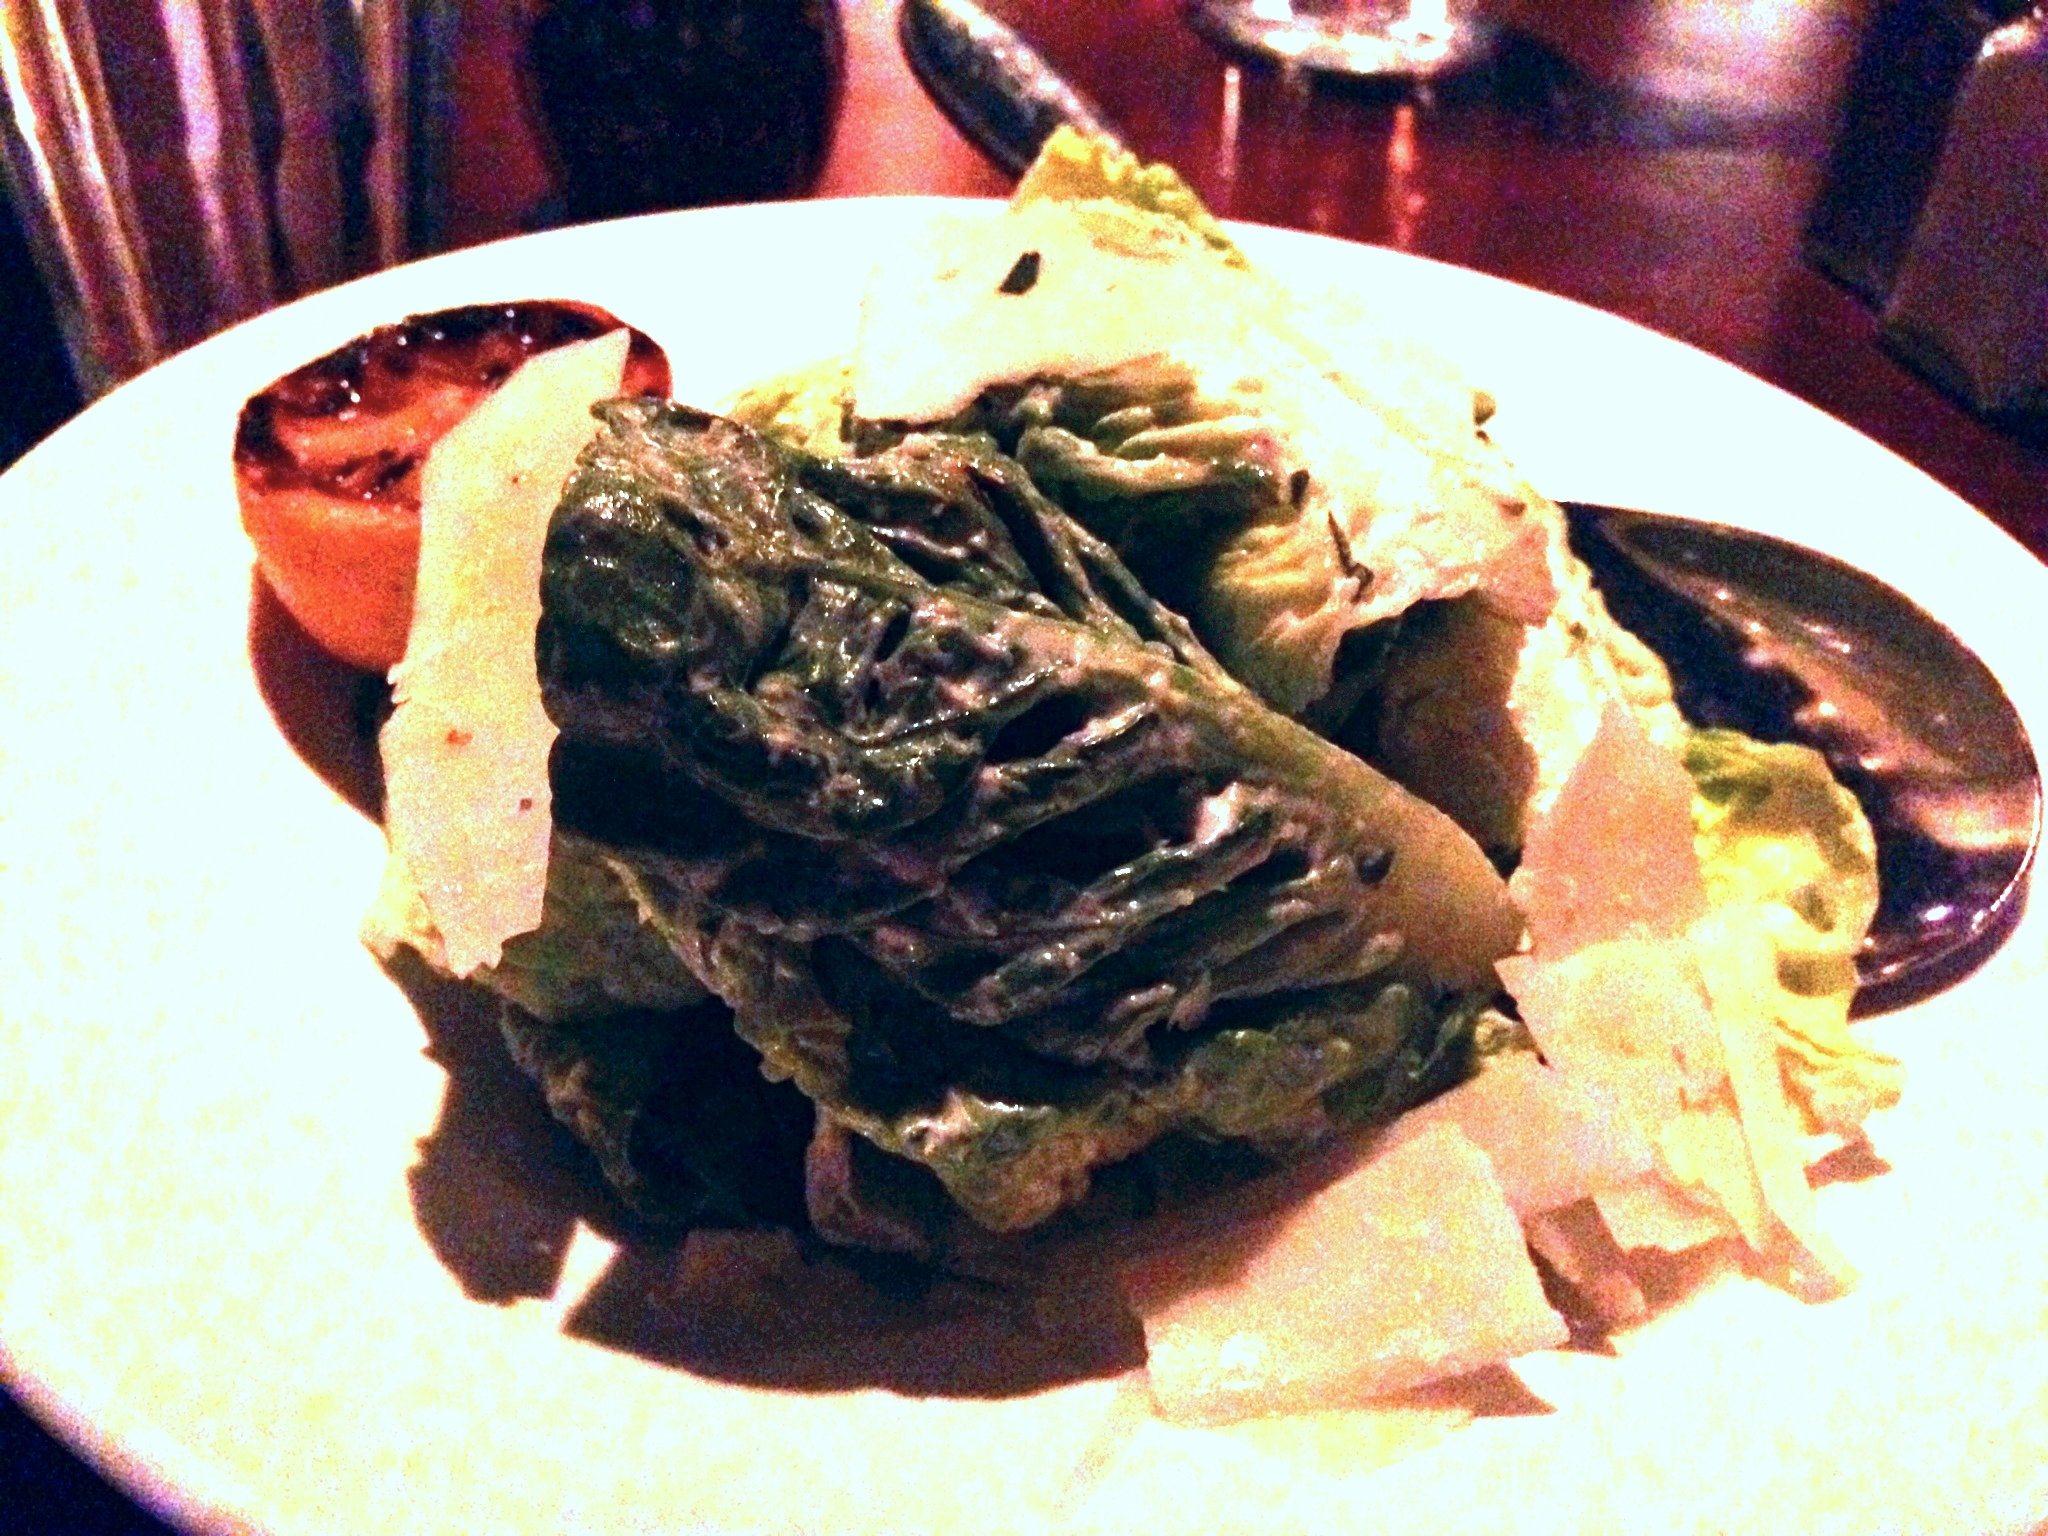 Ceasar Salad  (with no croutons):  This tasted way better than the picture looks. It was my favorite salad that we tried for sure.